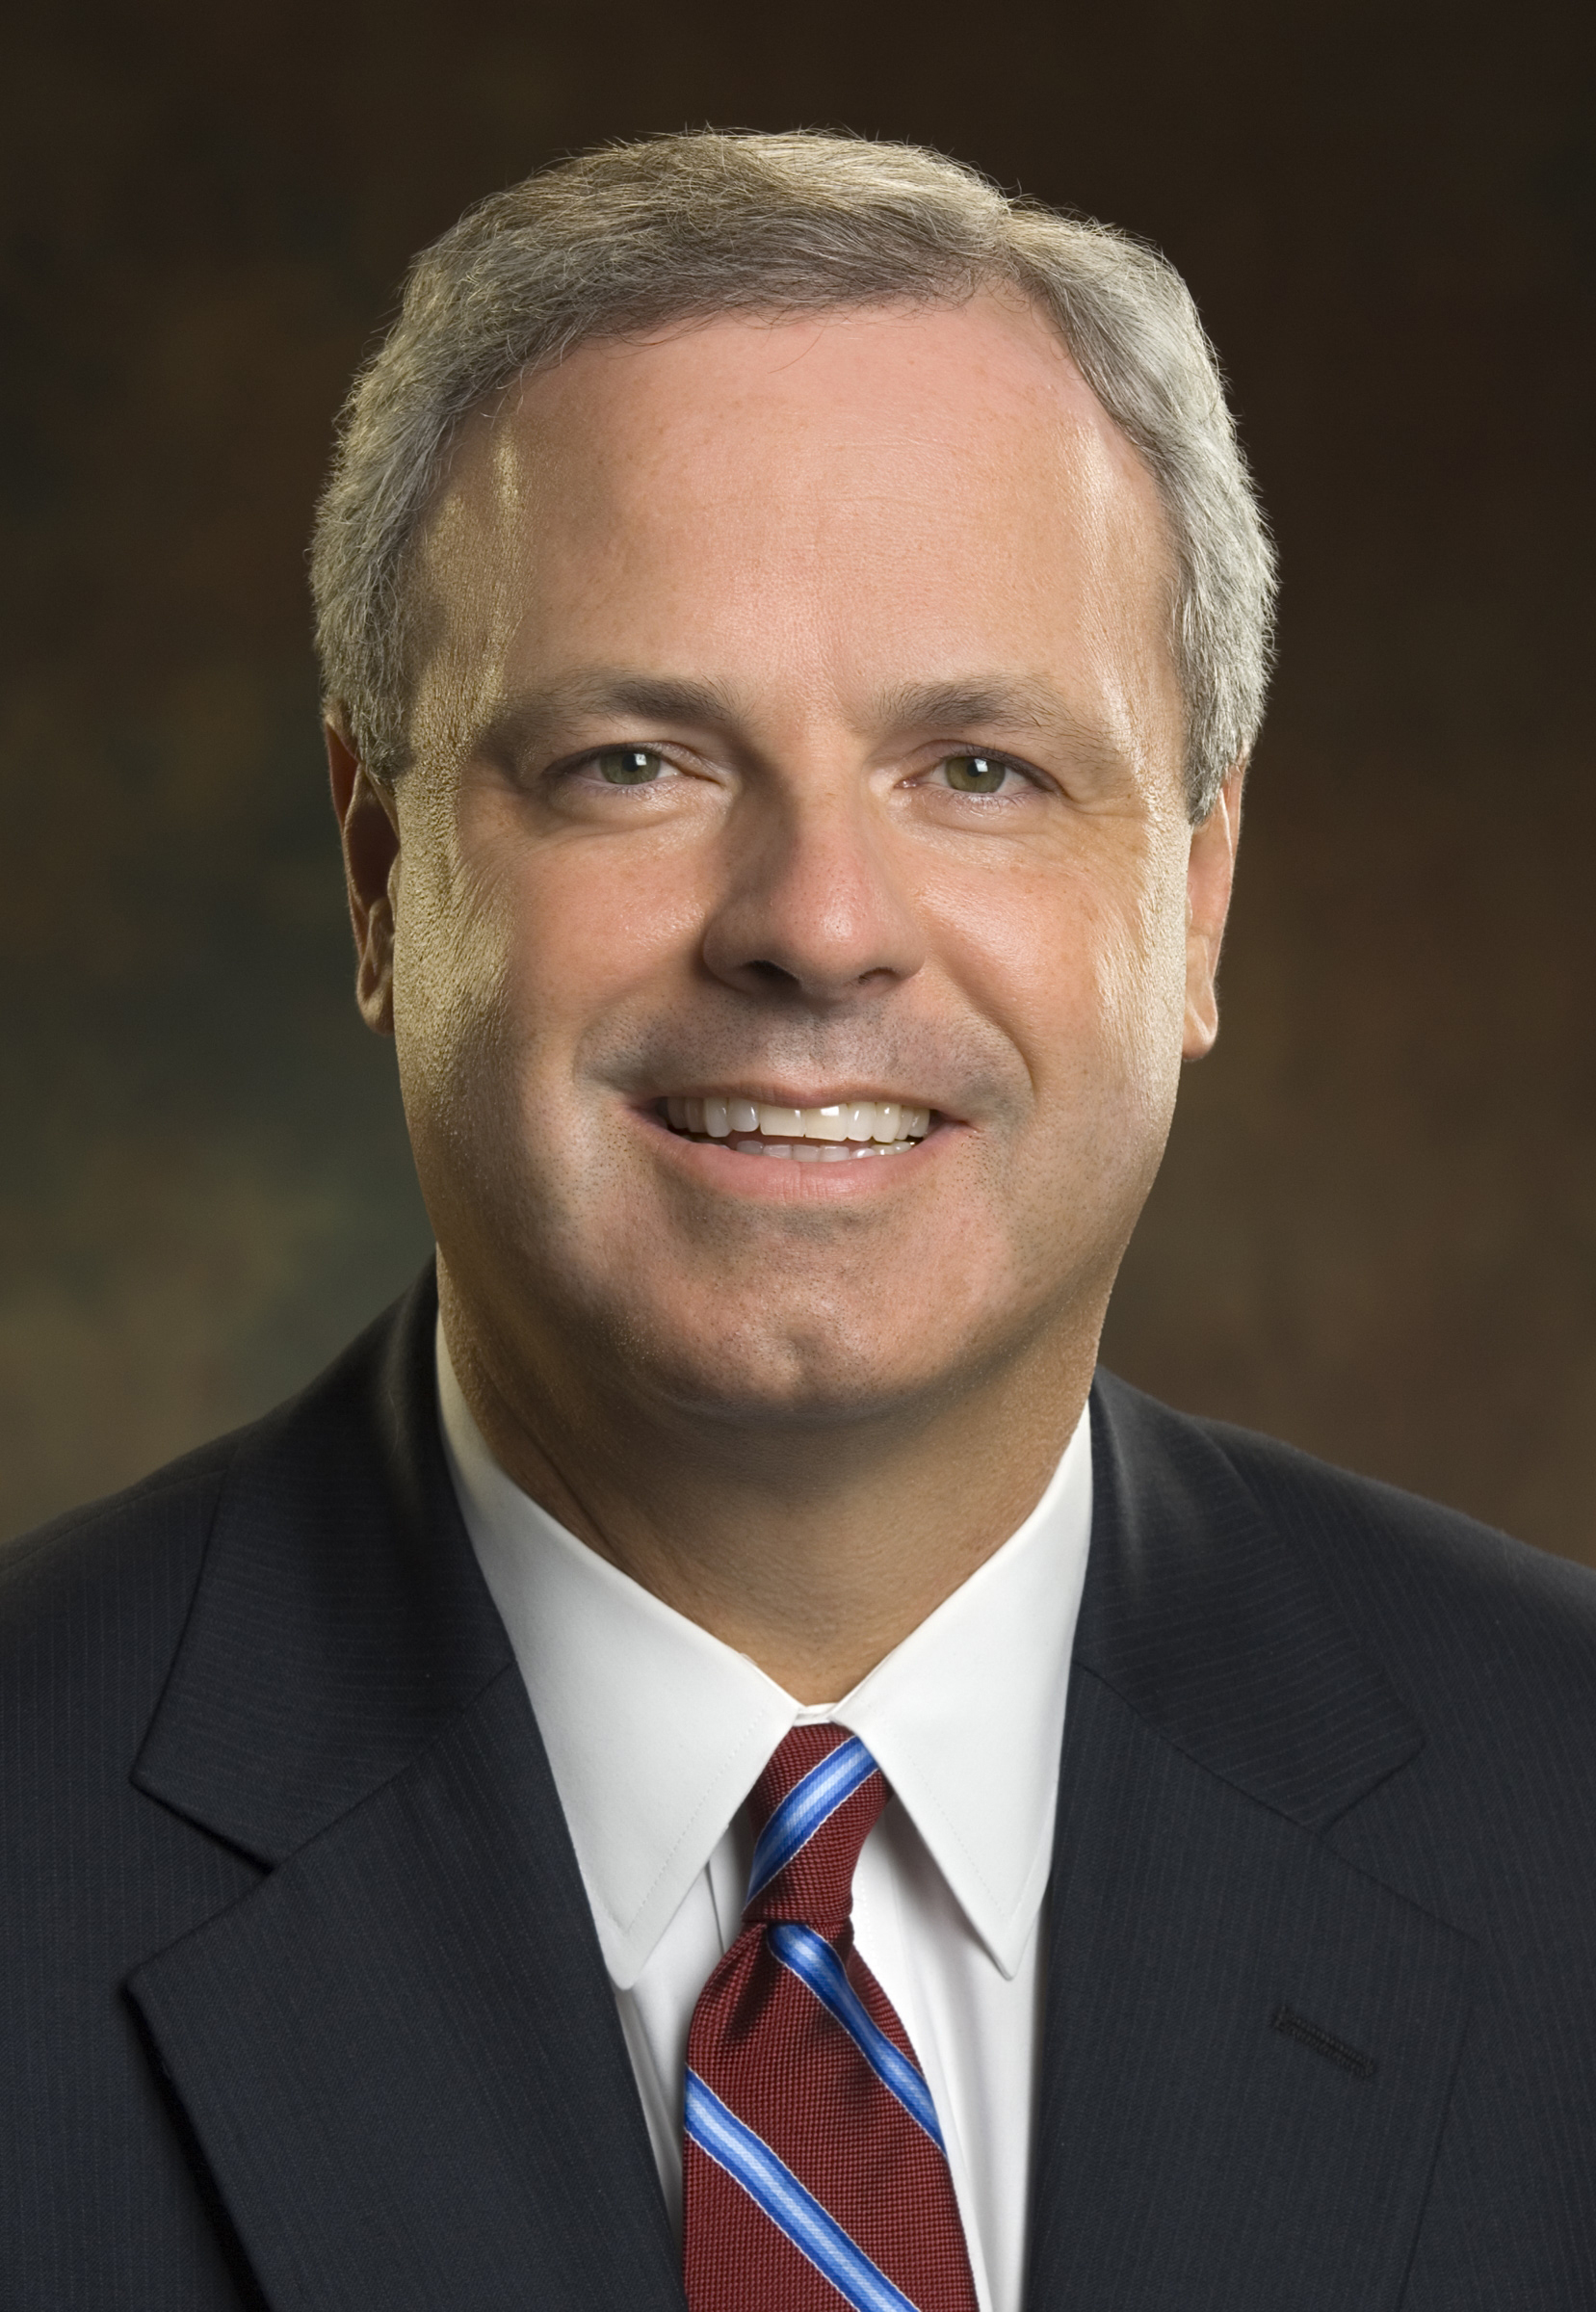 """Howard A. Burris III, MD, Chief Medical Officer and Executive Director, Drug Development, of Sarah Cannon has been named one of OncLive's 2014 """"Giants of Cancer Care."""" (Photo: Business Wire)"""